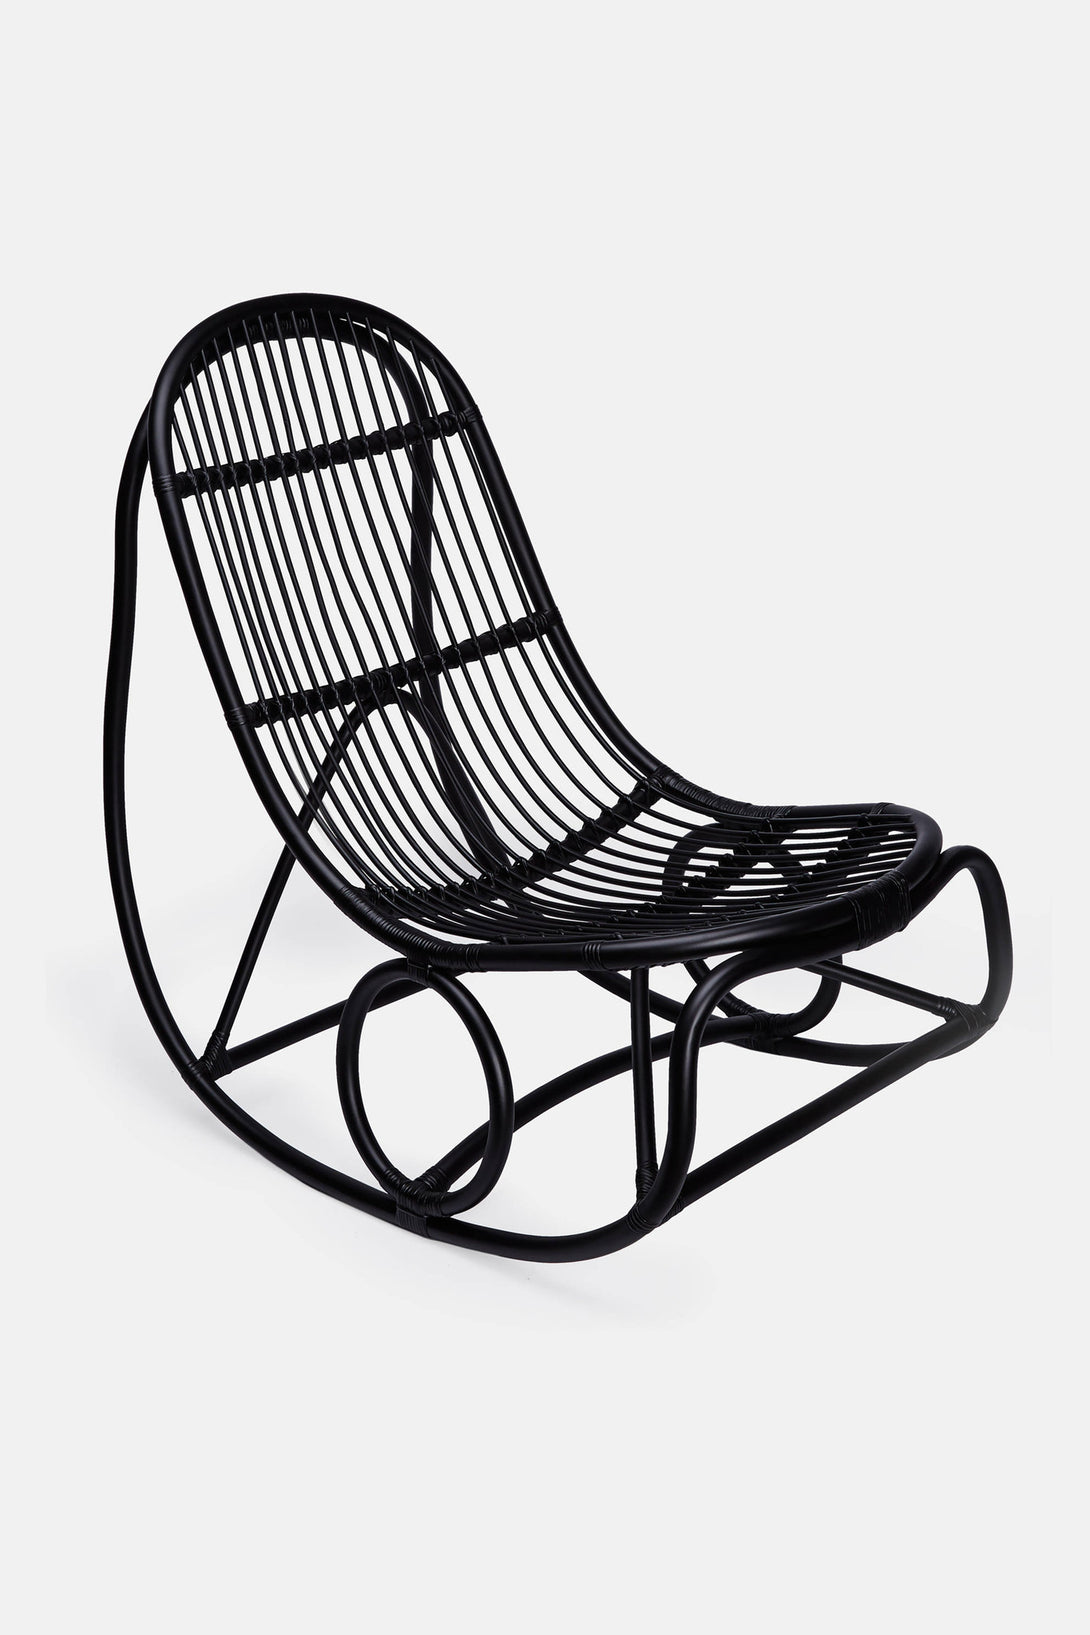 Merveilleux Nanny Rocking Chair By Nanna Ditzel